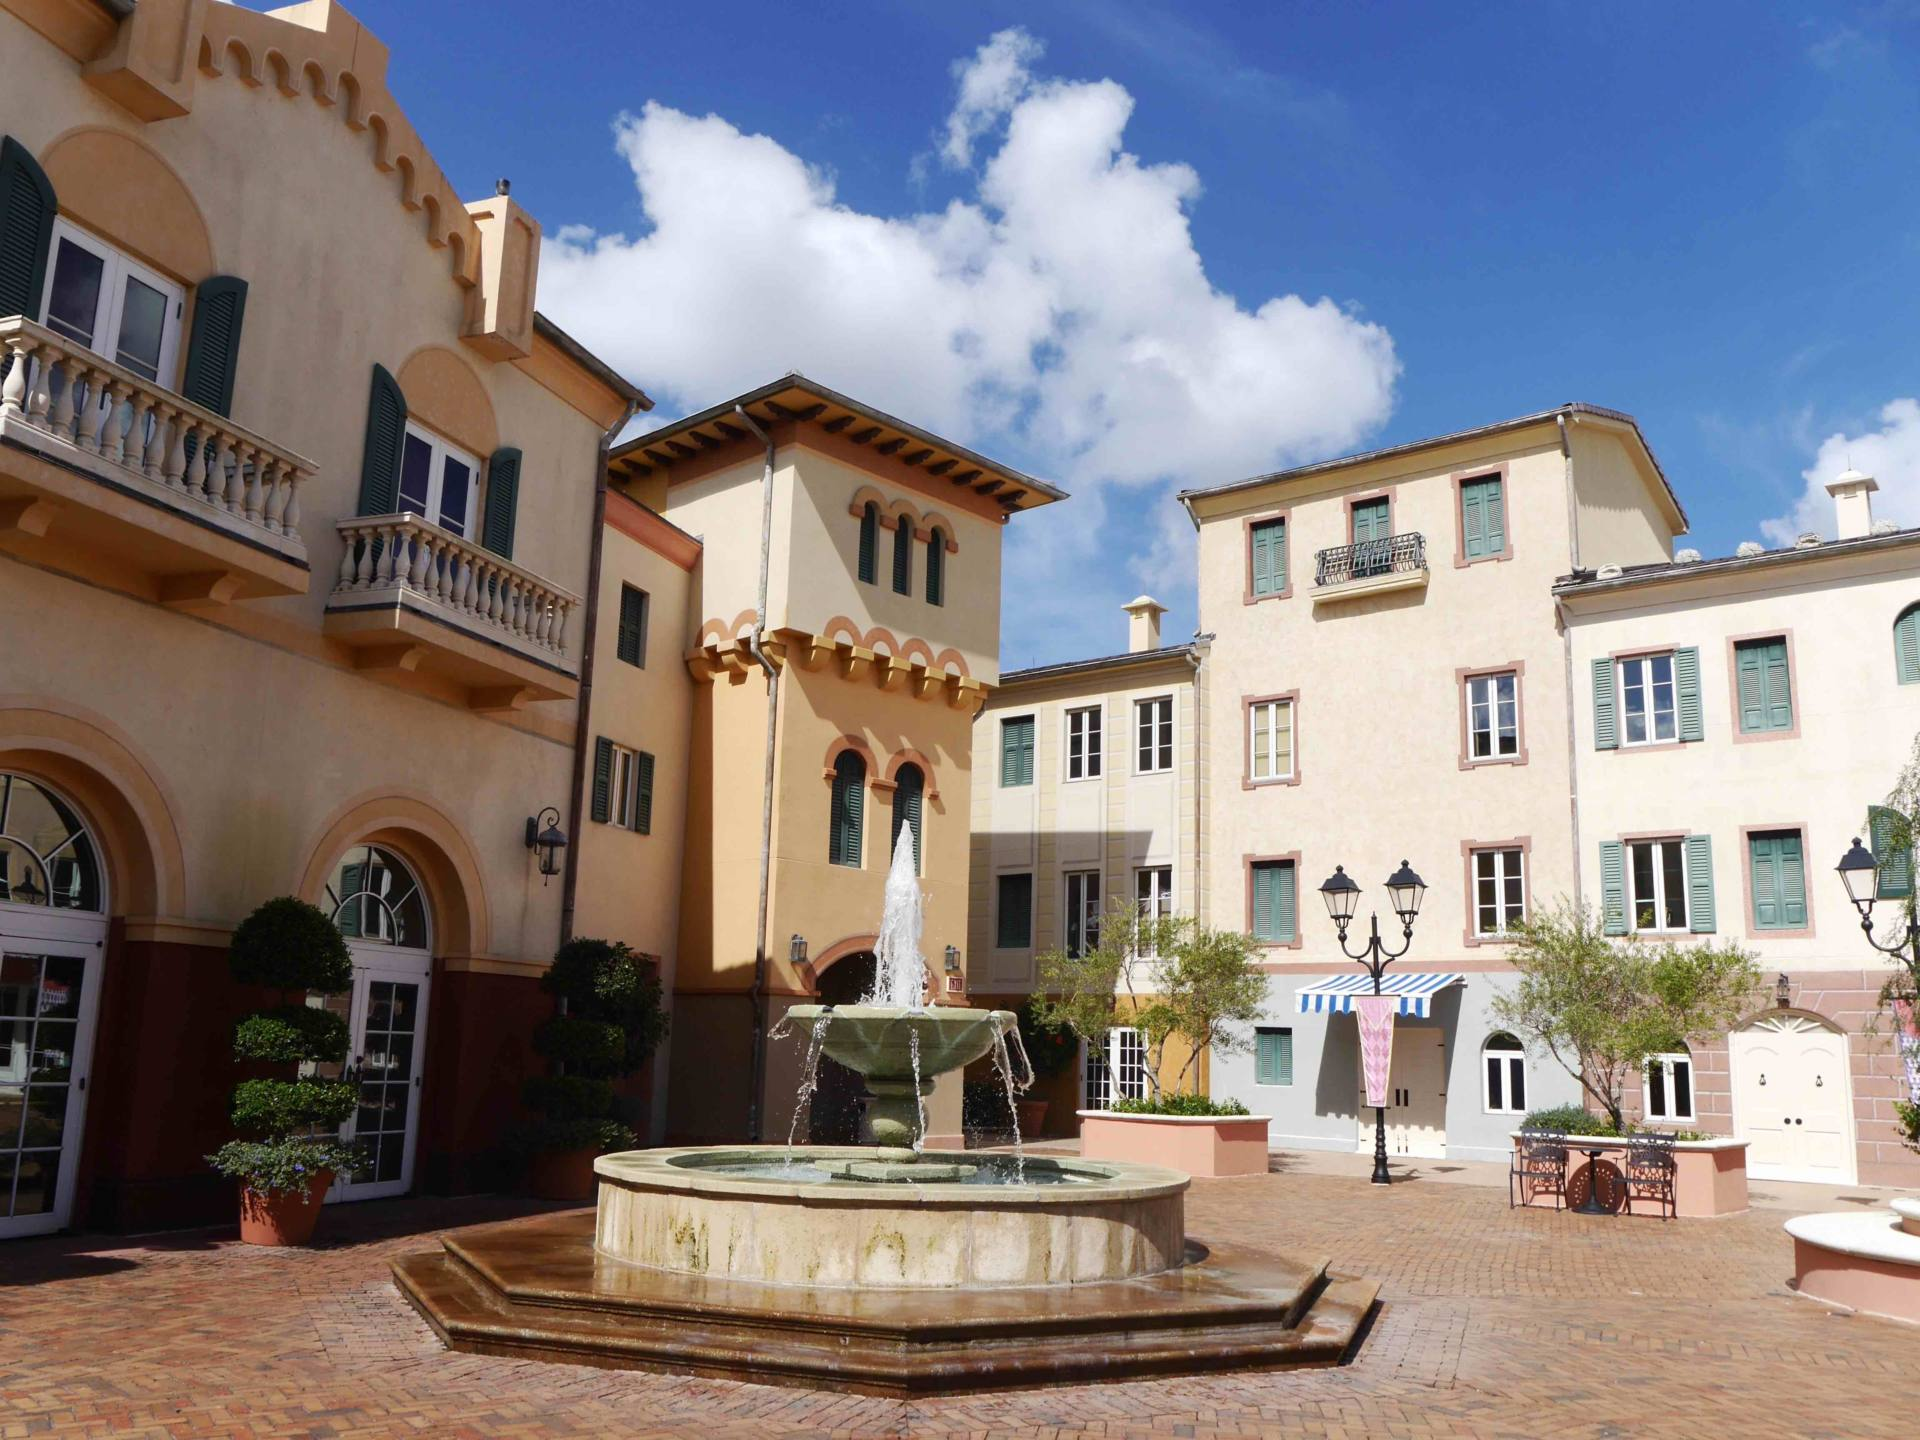 Loews Portofino Bay Hotel >> What To Expect At Loews Portofino Bay Hotel Univesal Orlando Resort